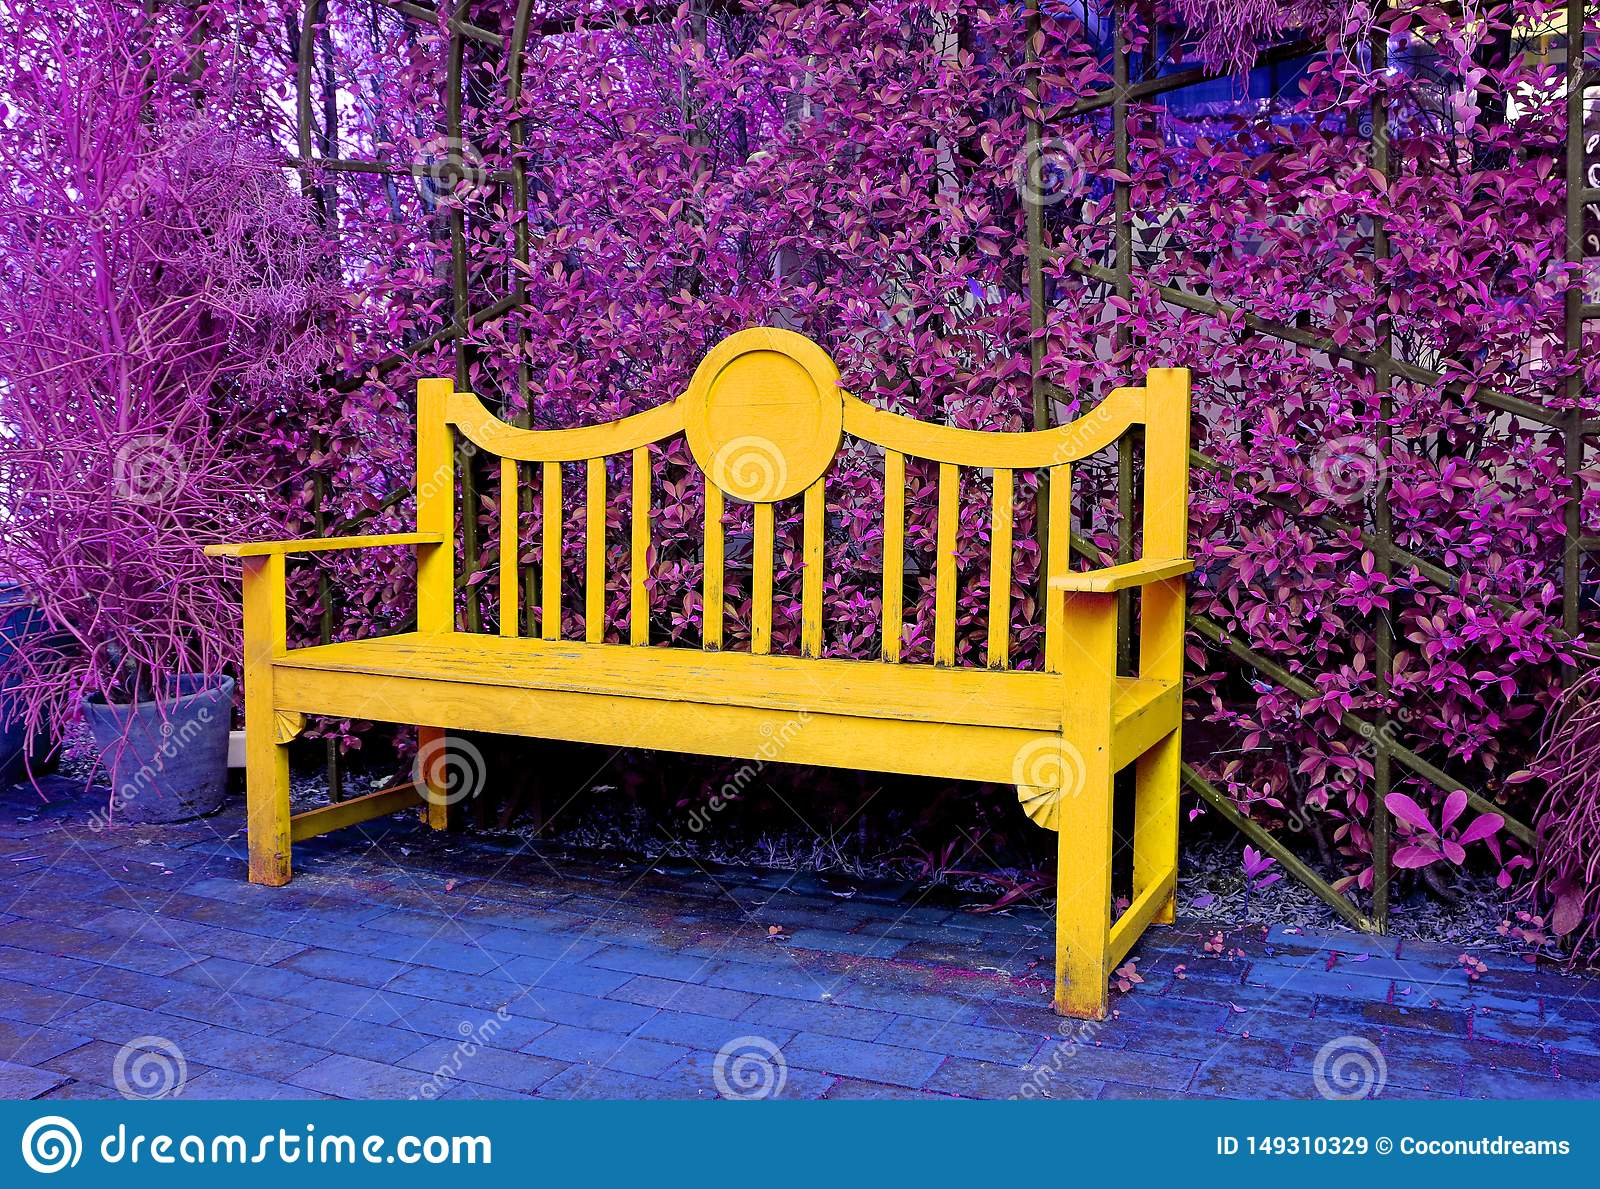 Groovy Surreal Pop Art Style Yellow Wooden Bench In Purple Colored Gmtry Best Dining Table And Chair Ideas Images Gmtryco